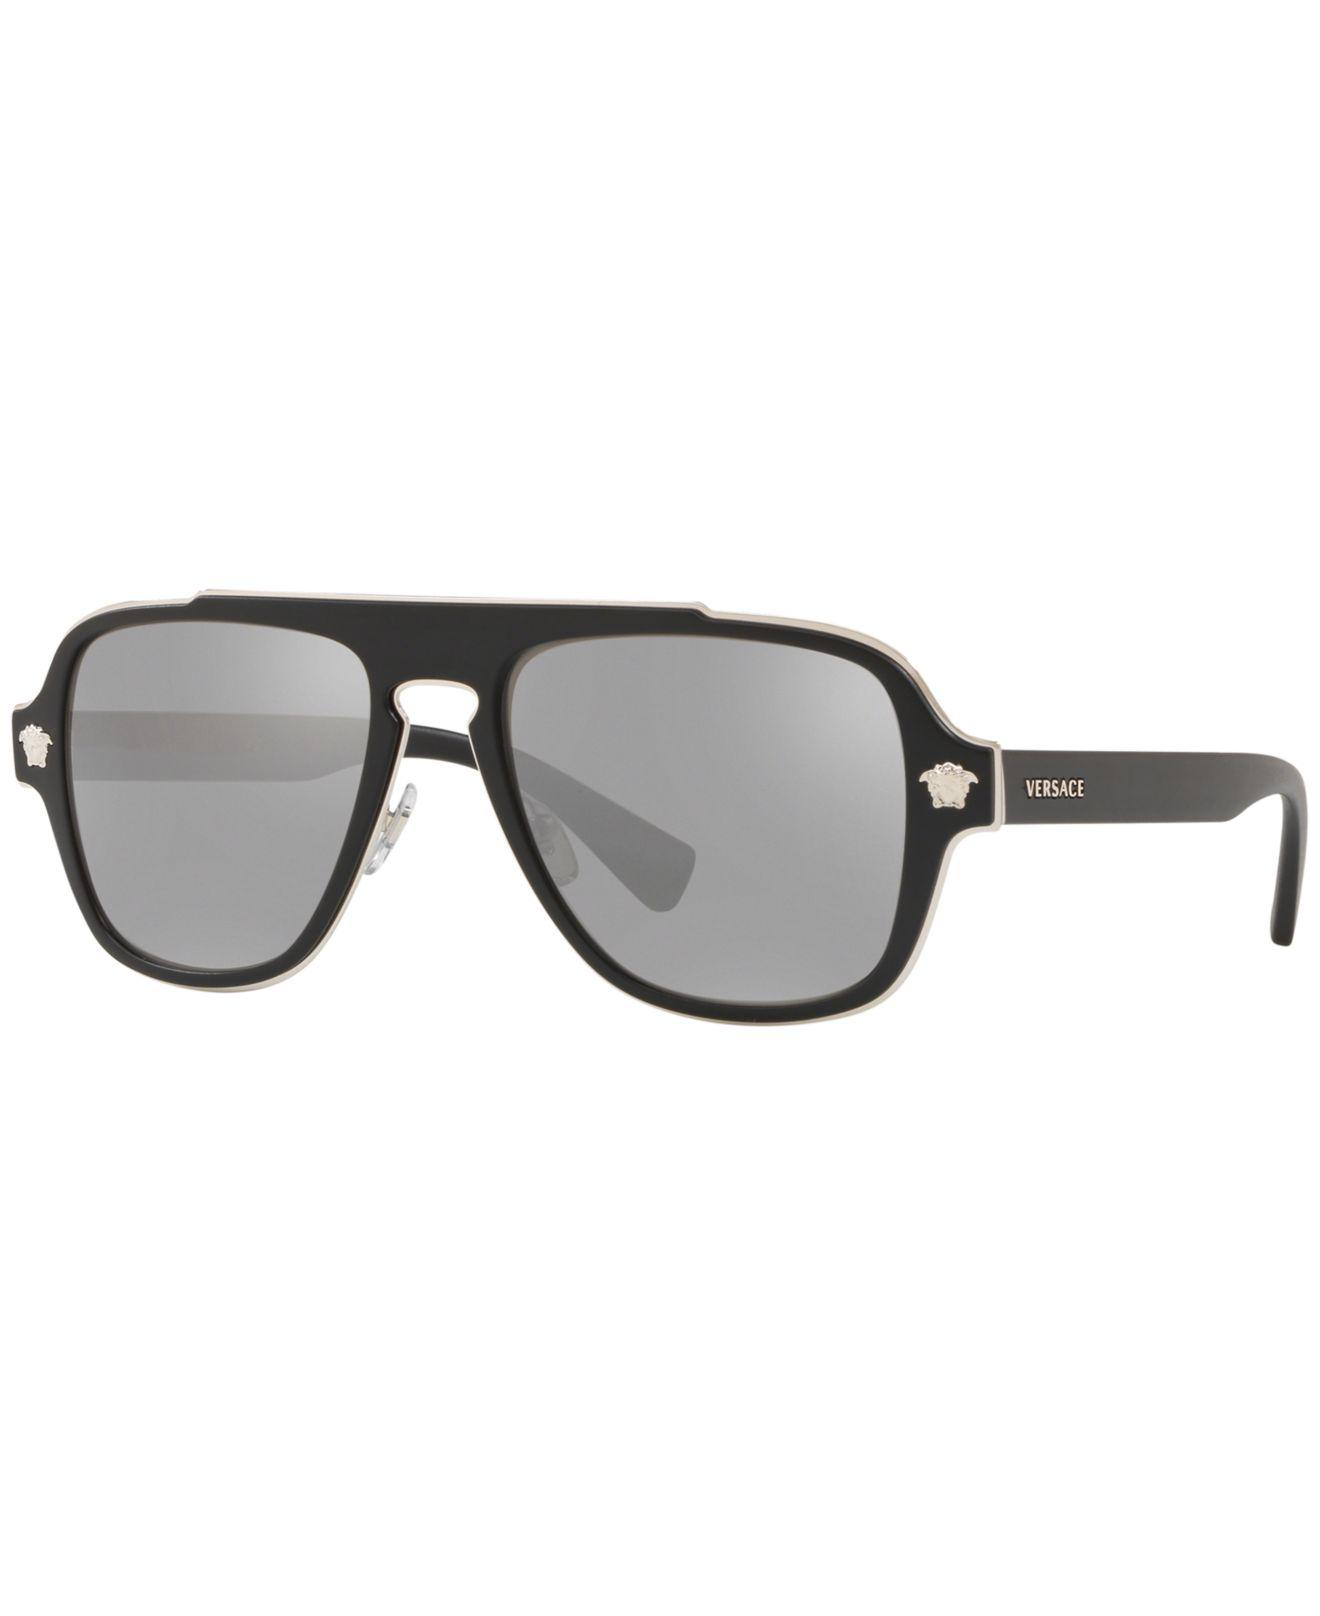 cff98cbf94 Lyst - Versace Ve2199 for Men